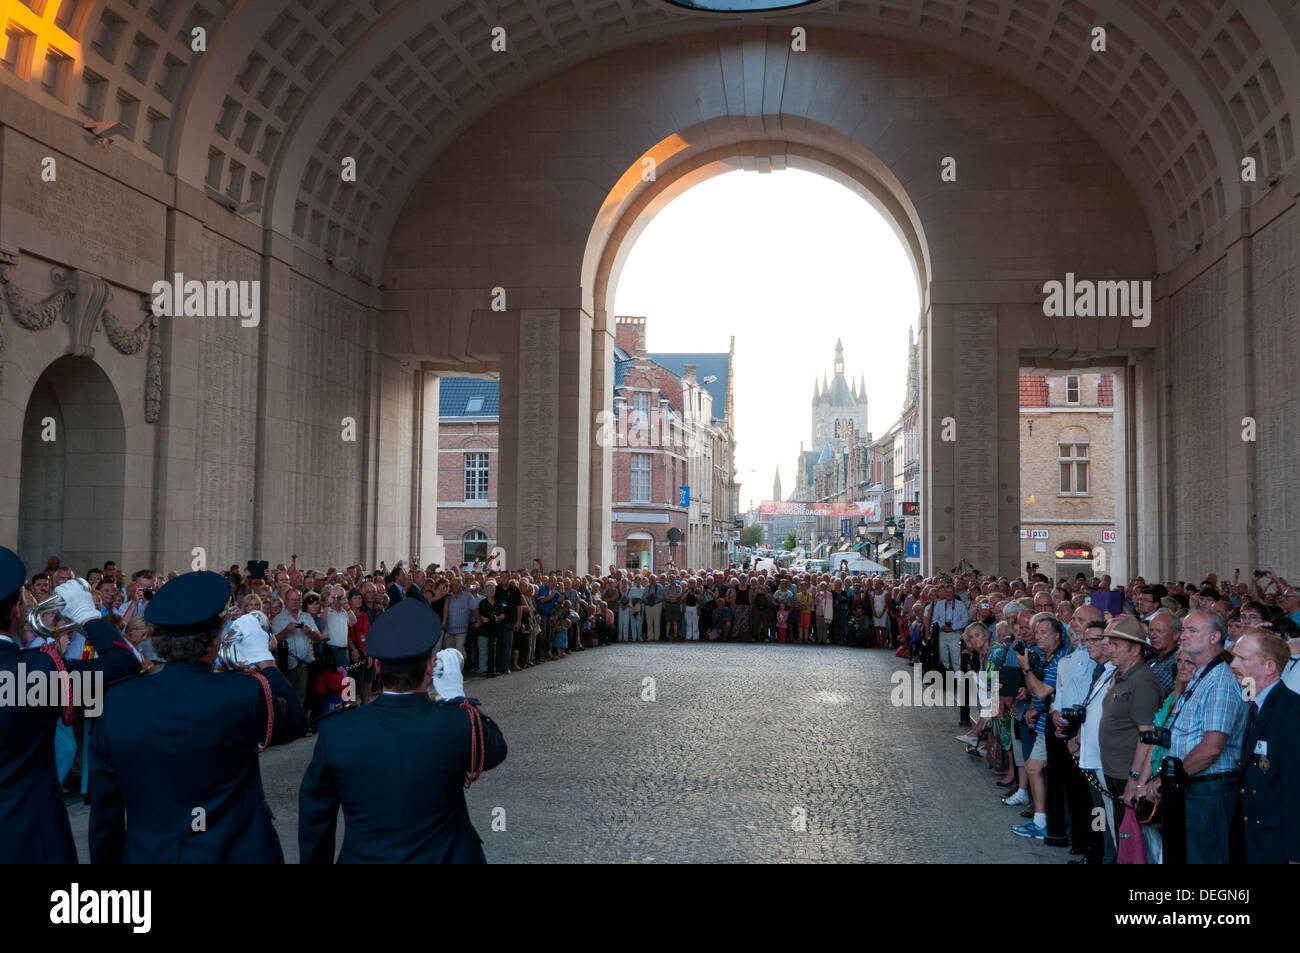 Menin gate night images top images for menin gate night on picsunday 08072018 to 0613 freerunsca Image collections